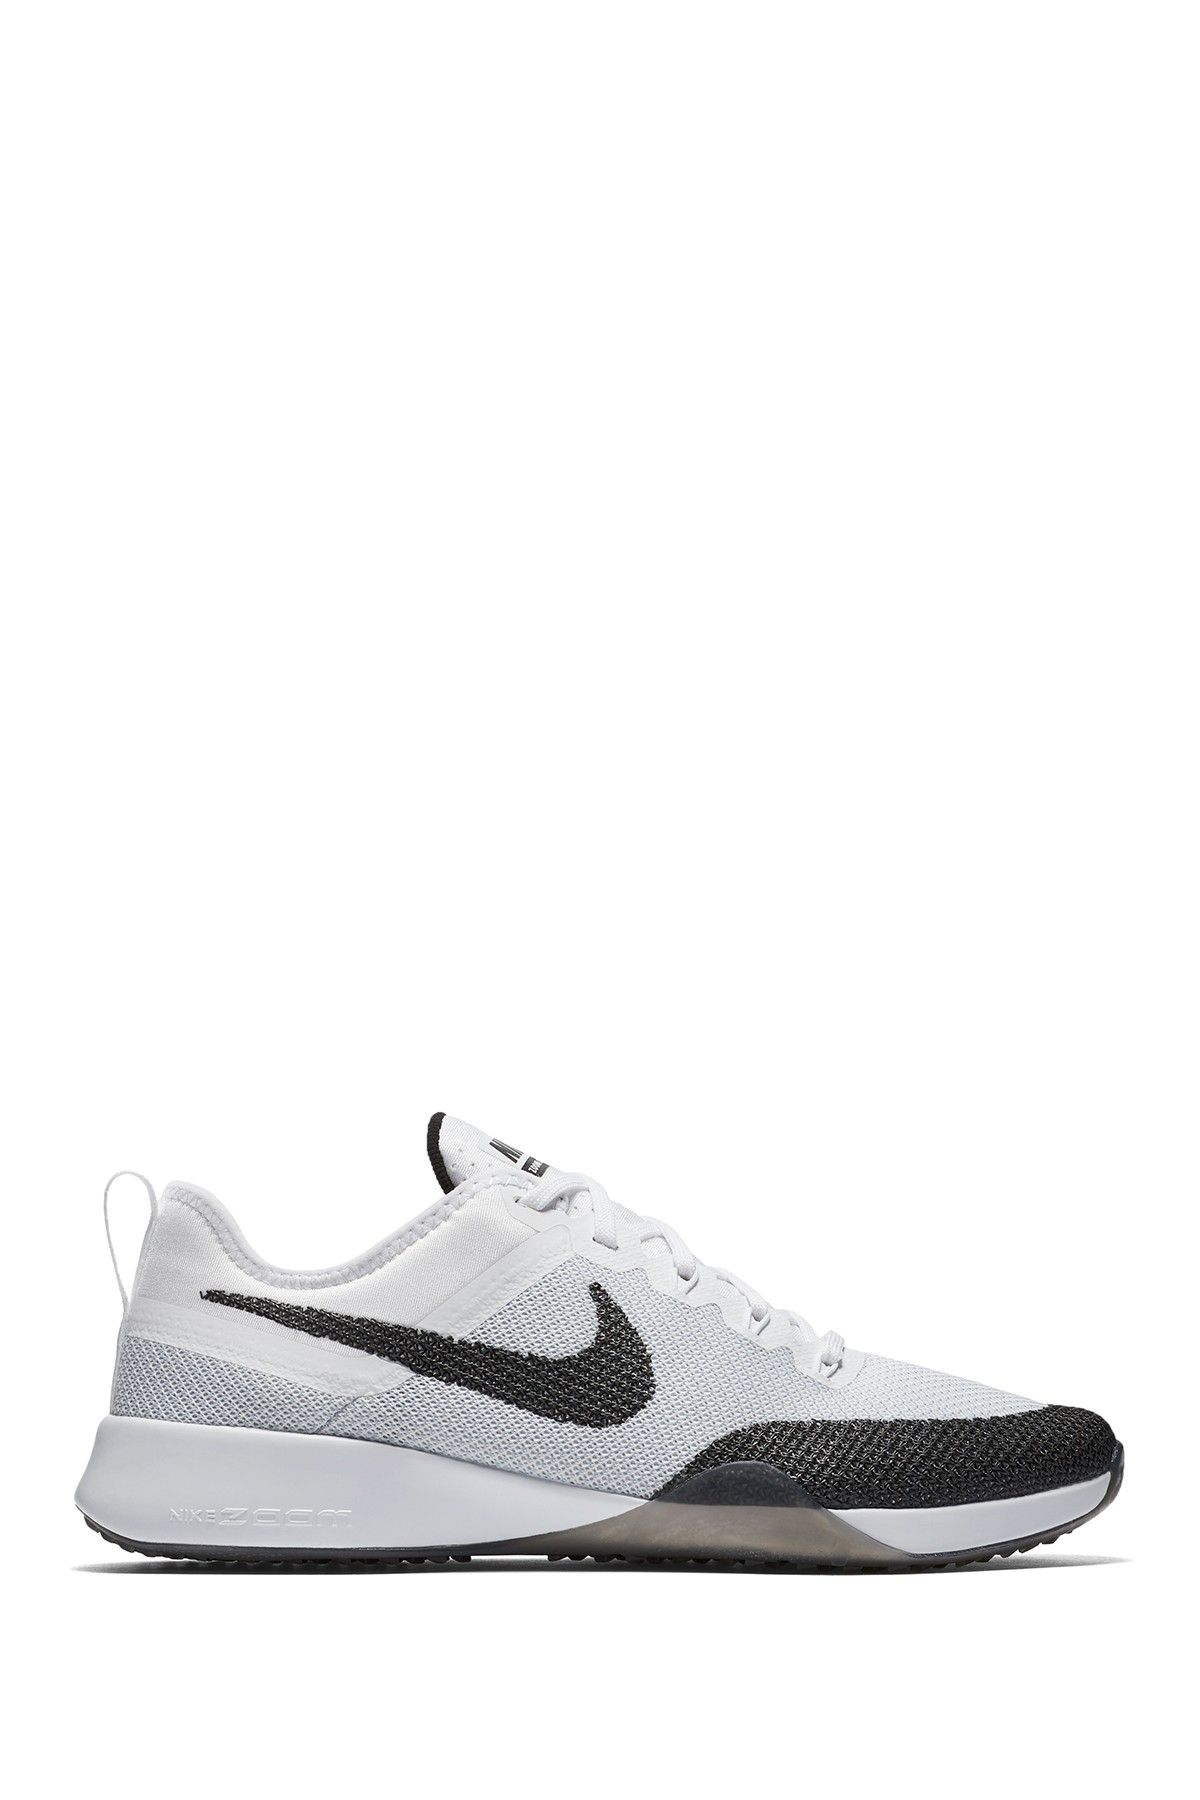 new product a866f c2201 Image of Nike Nike Air Zoom Training Sneaker